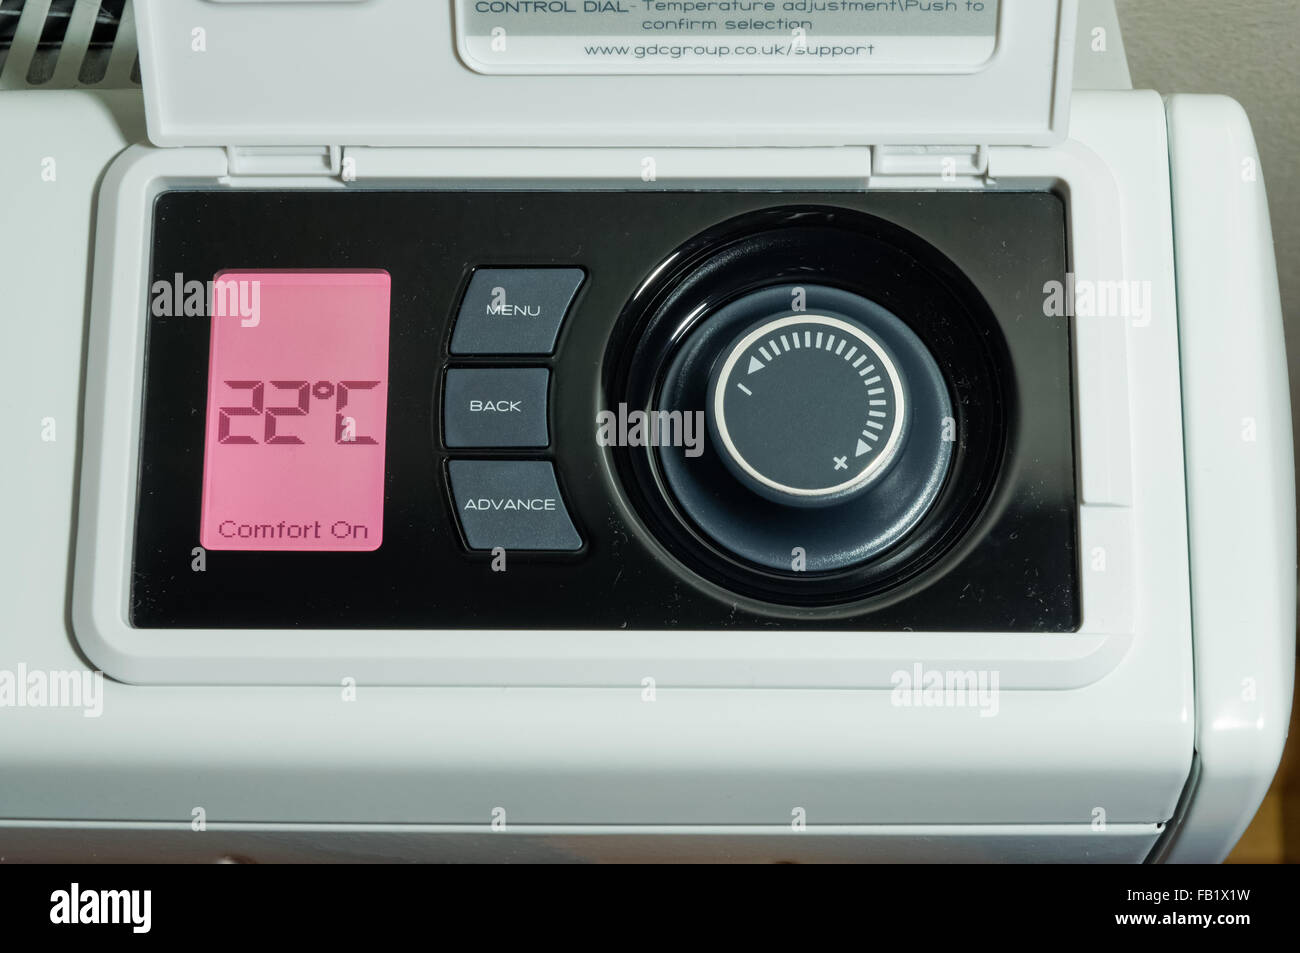 LCD display and temperature control panel on electric storage heater - Stock Image